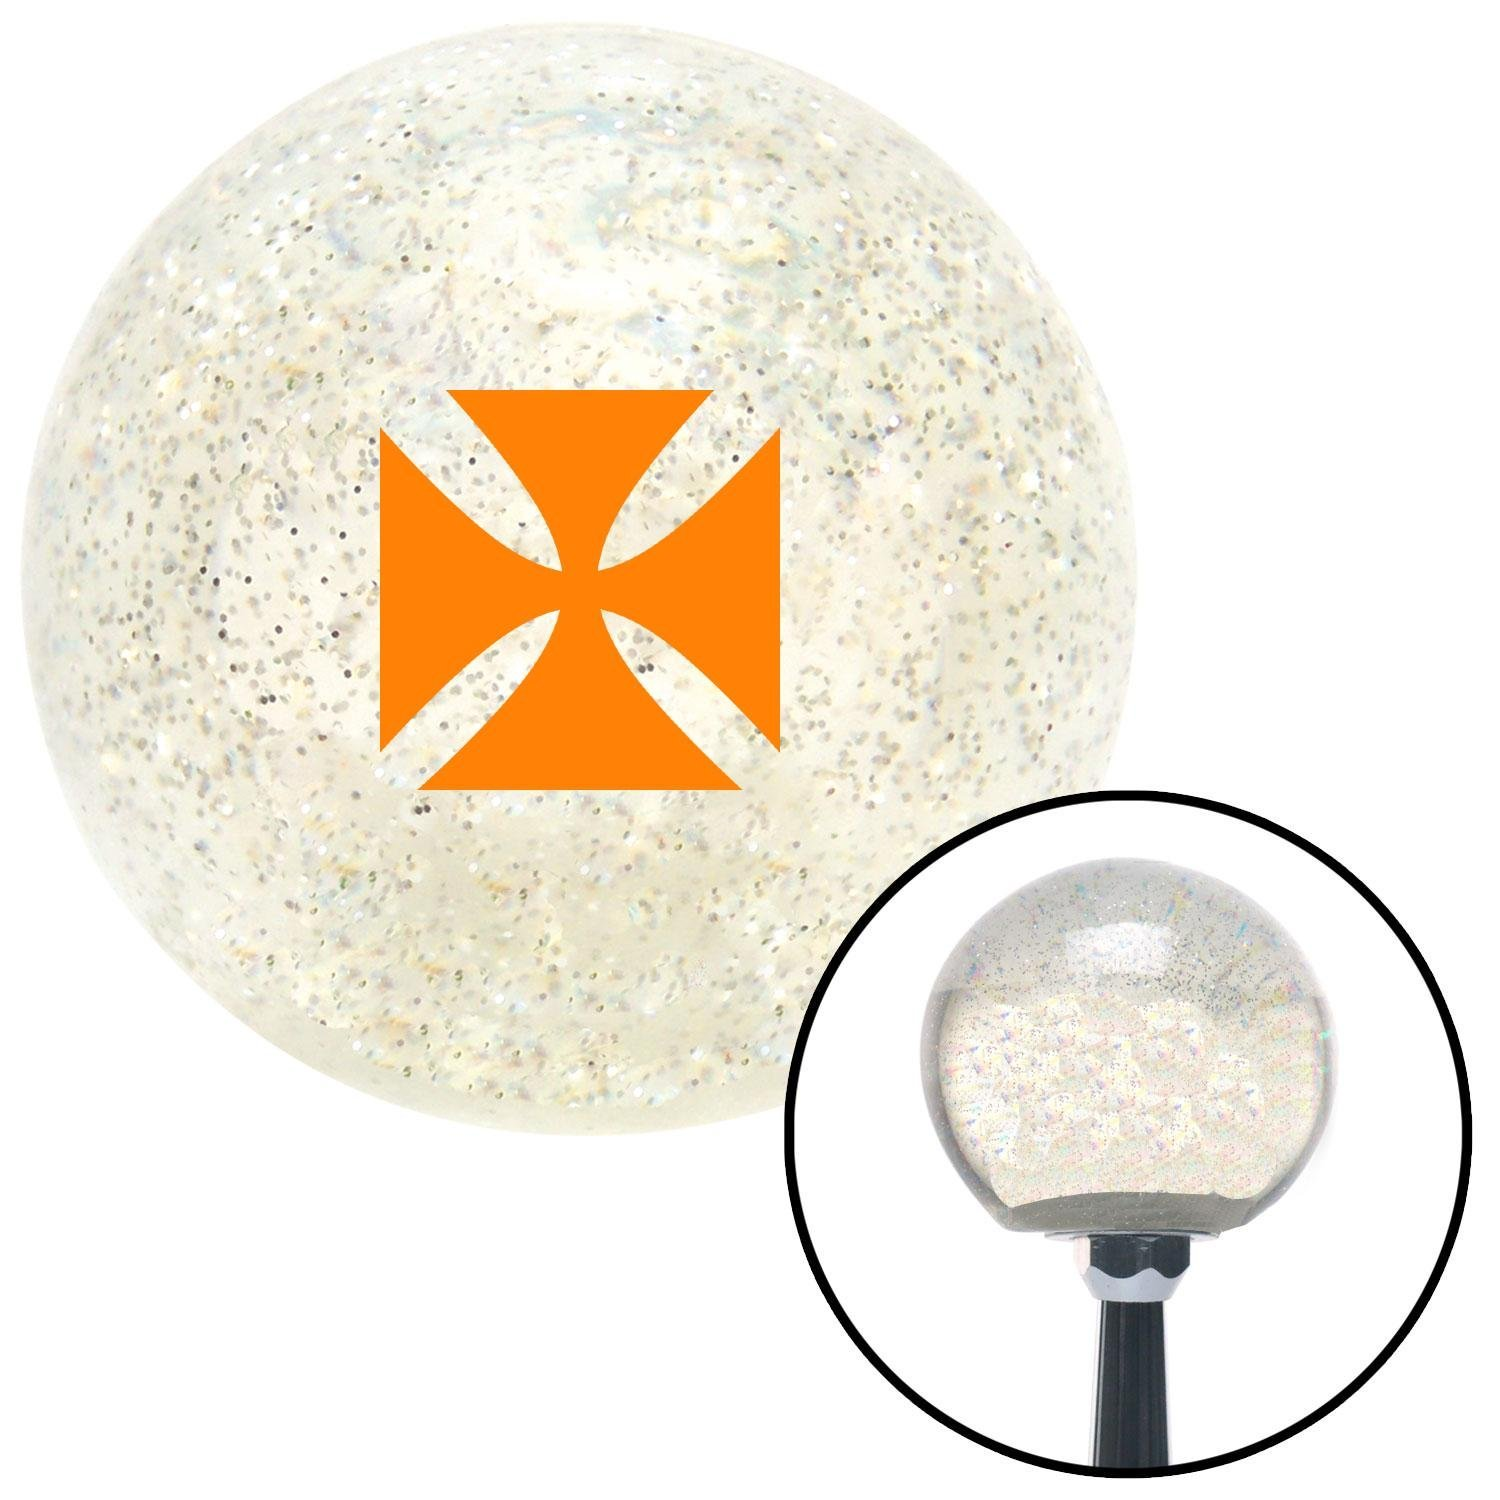 American Shifter 277308 Shift Knob Company Orange Cross Maltese Clear Metal Flake with M16 x 1.5 Insert